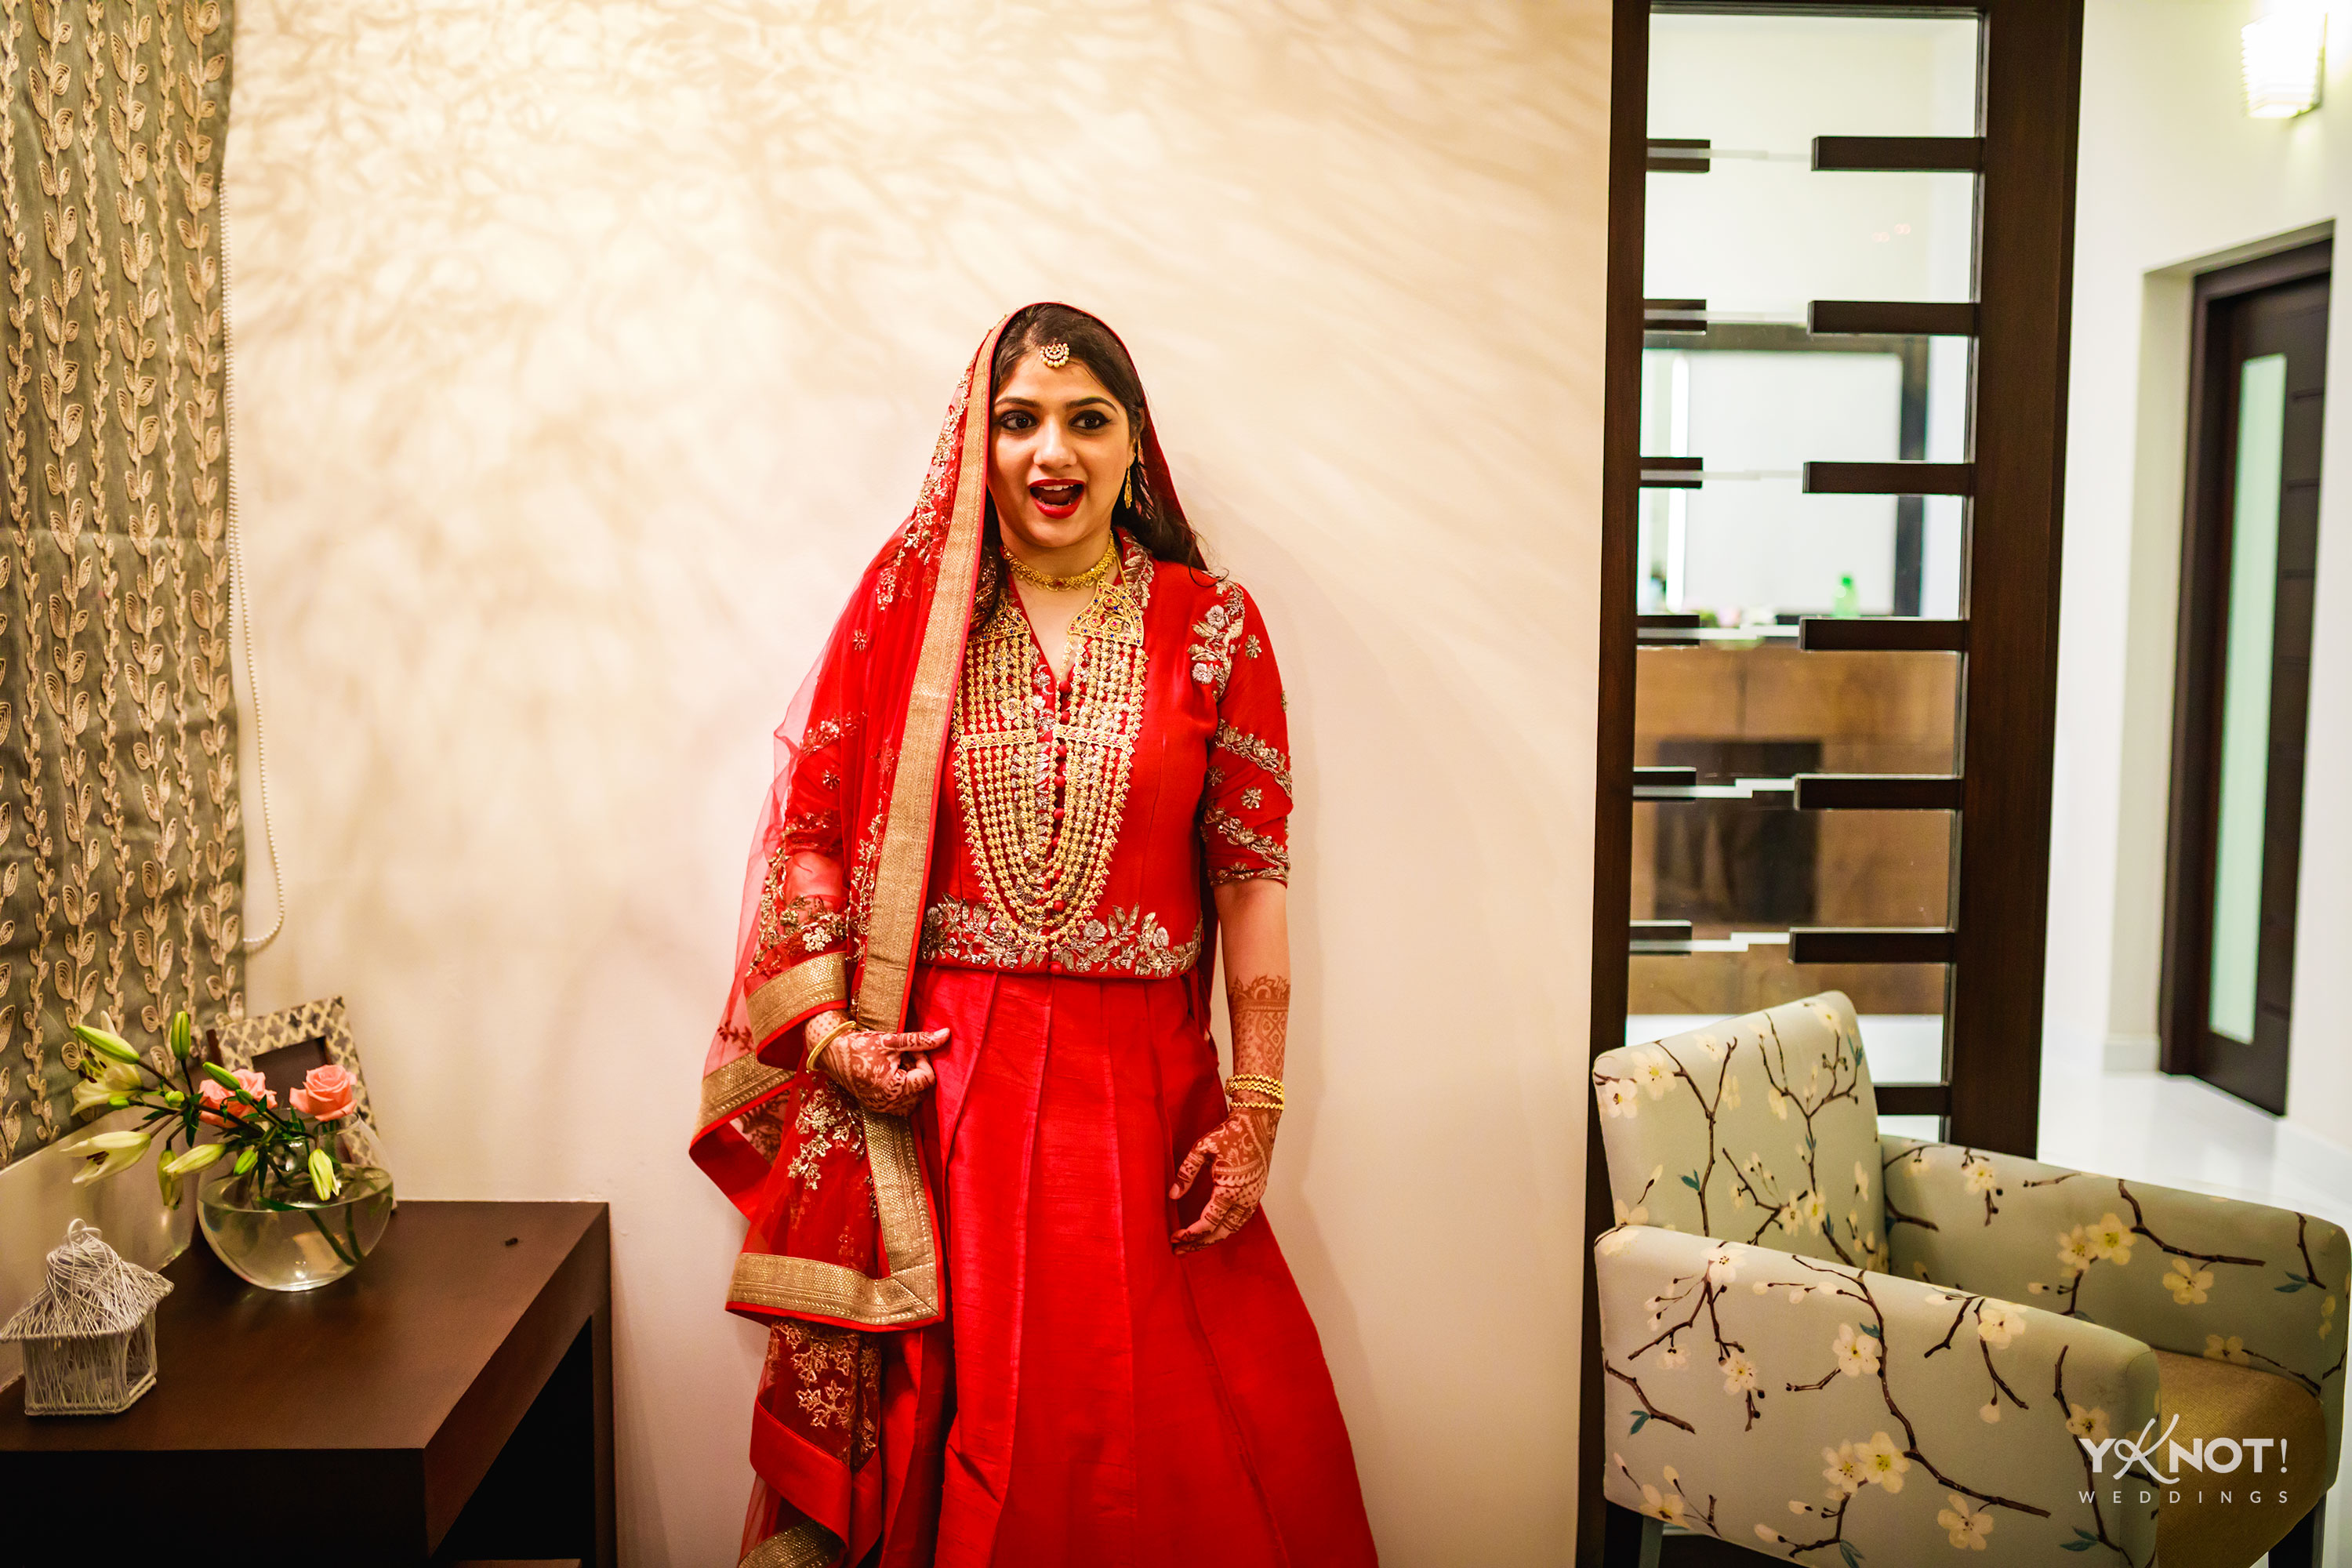 kerala muslim wedding candid photographer